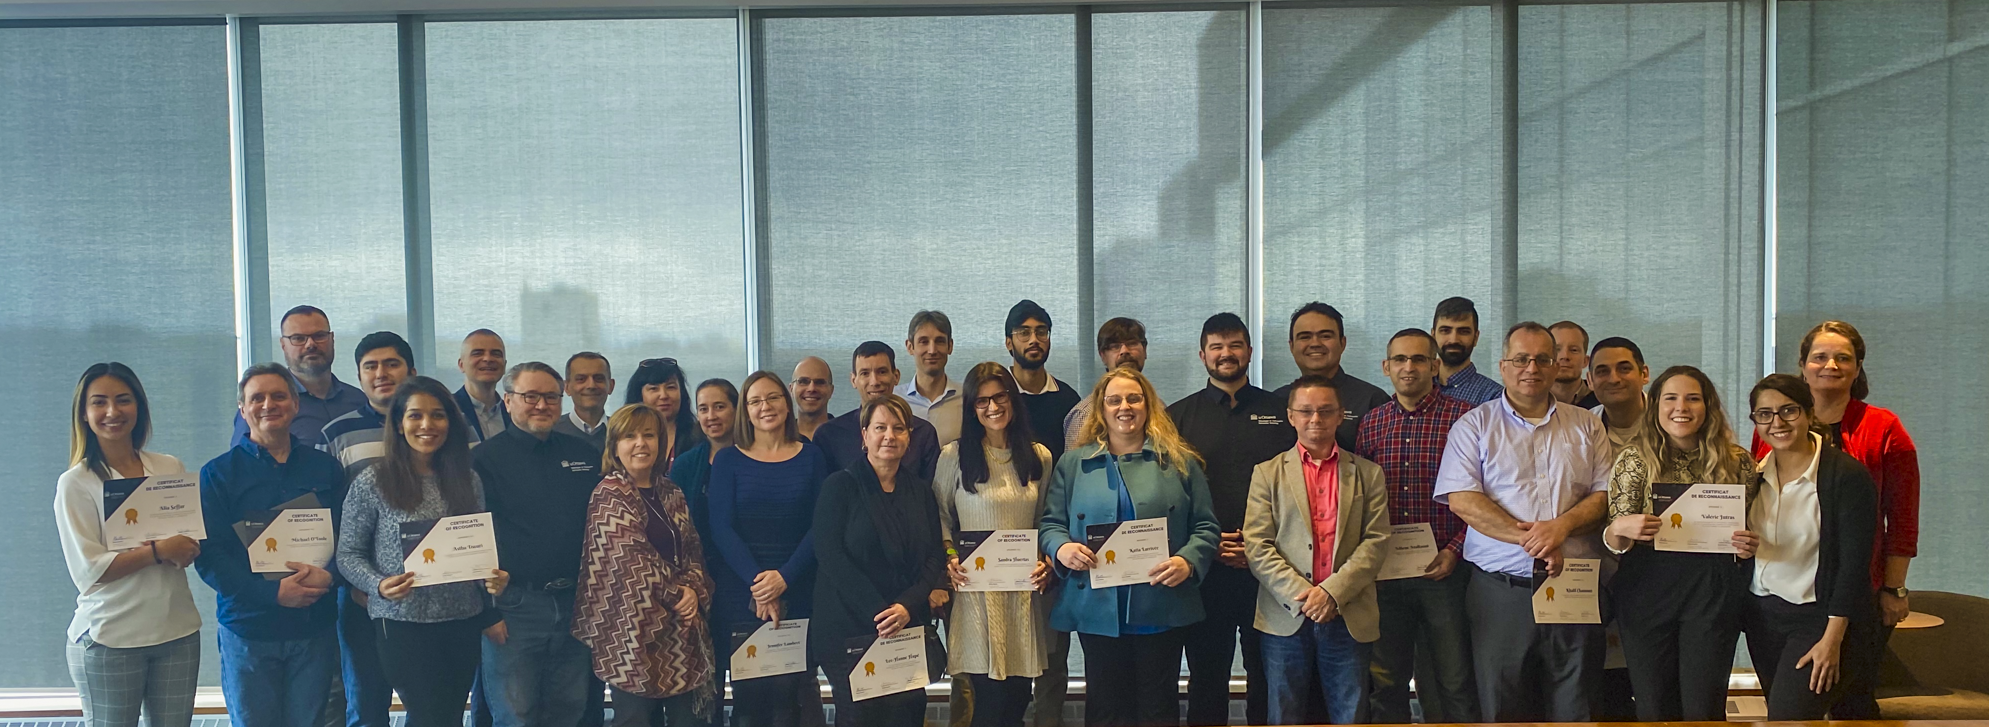 diverse group of professionals standing and holding certificates